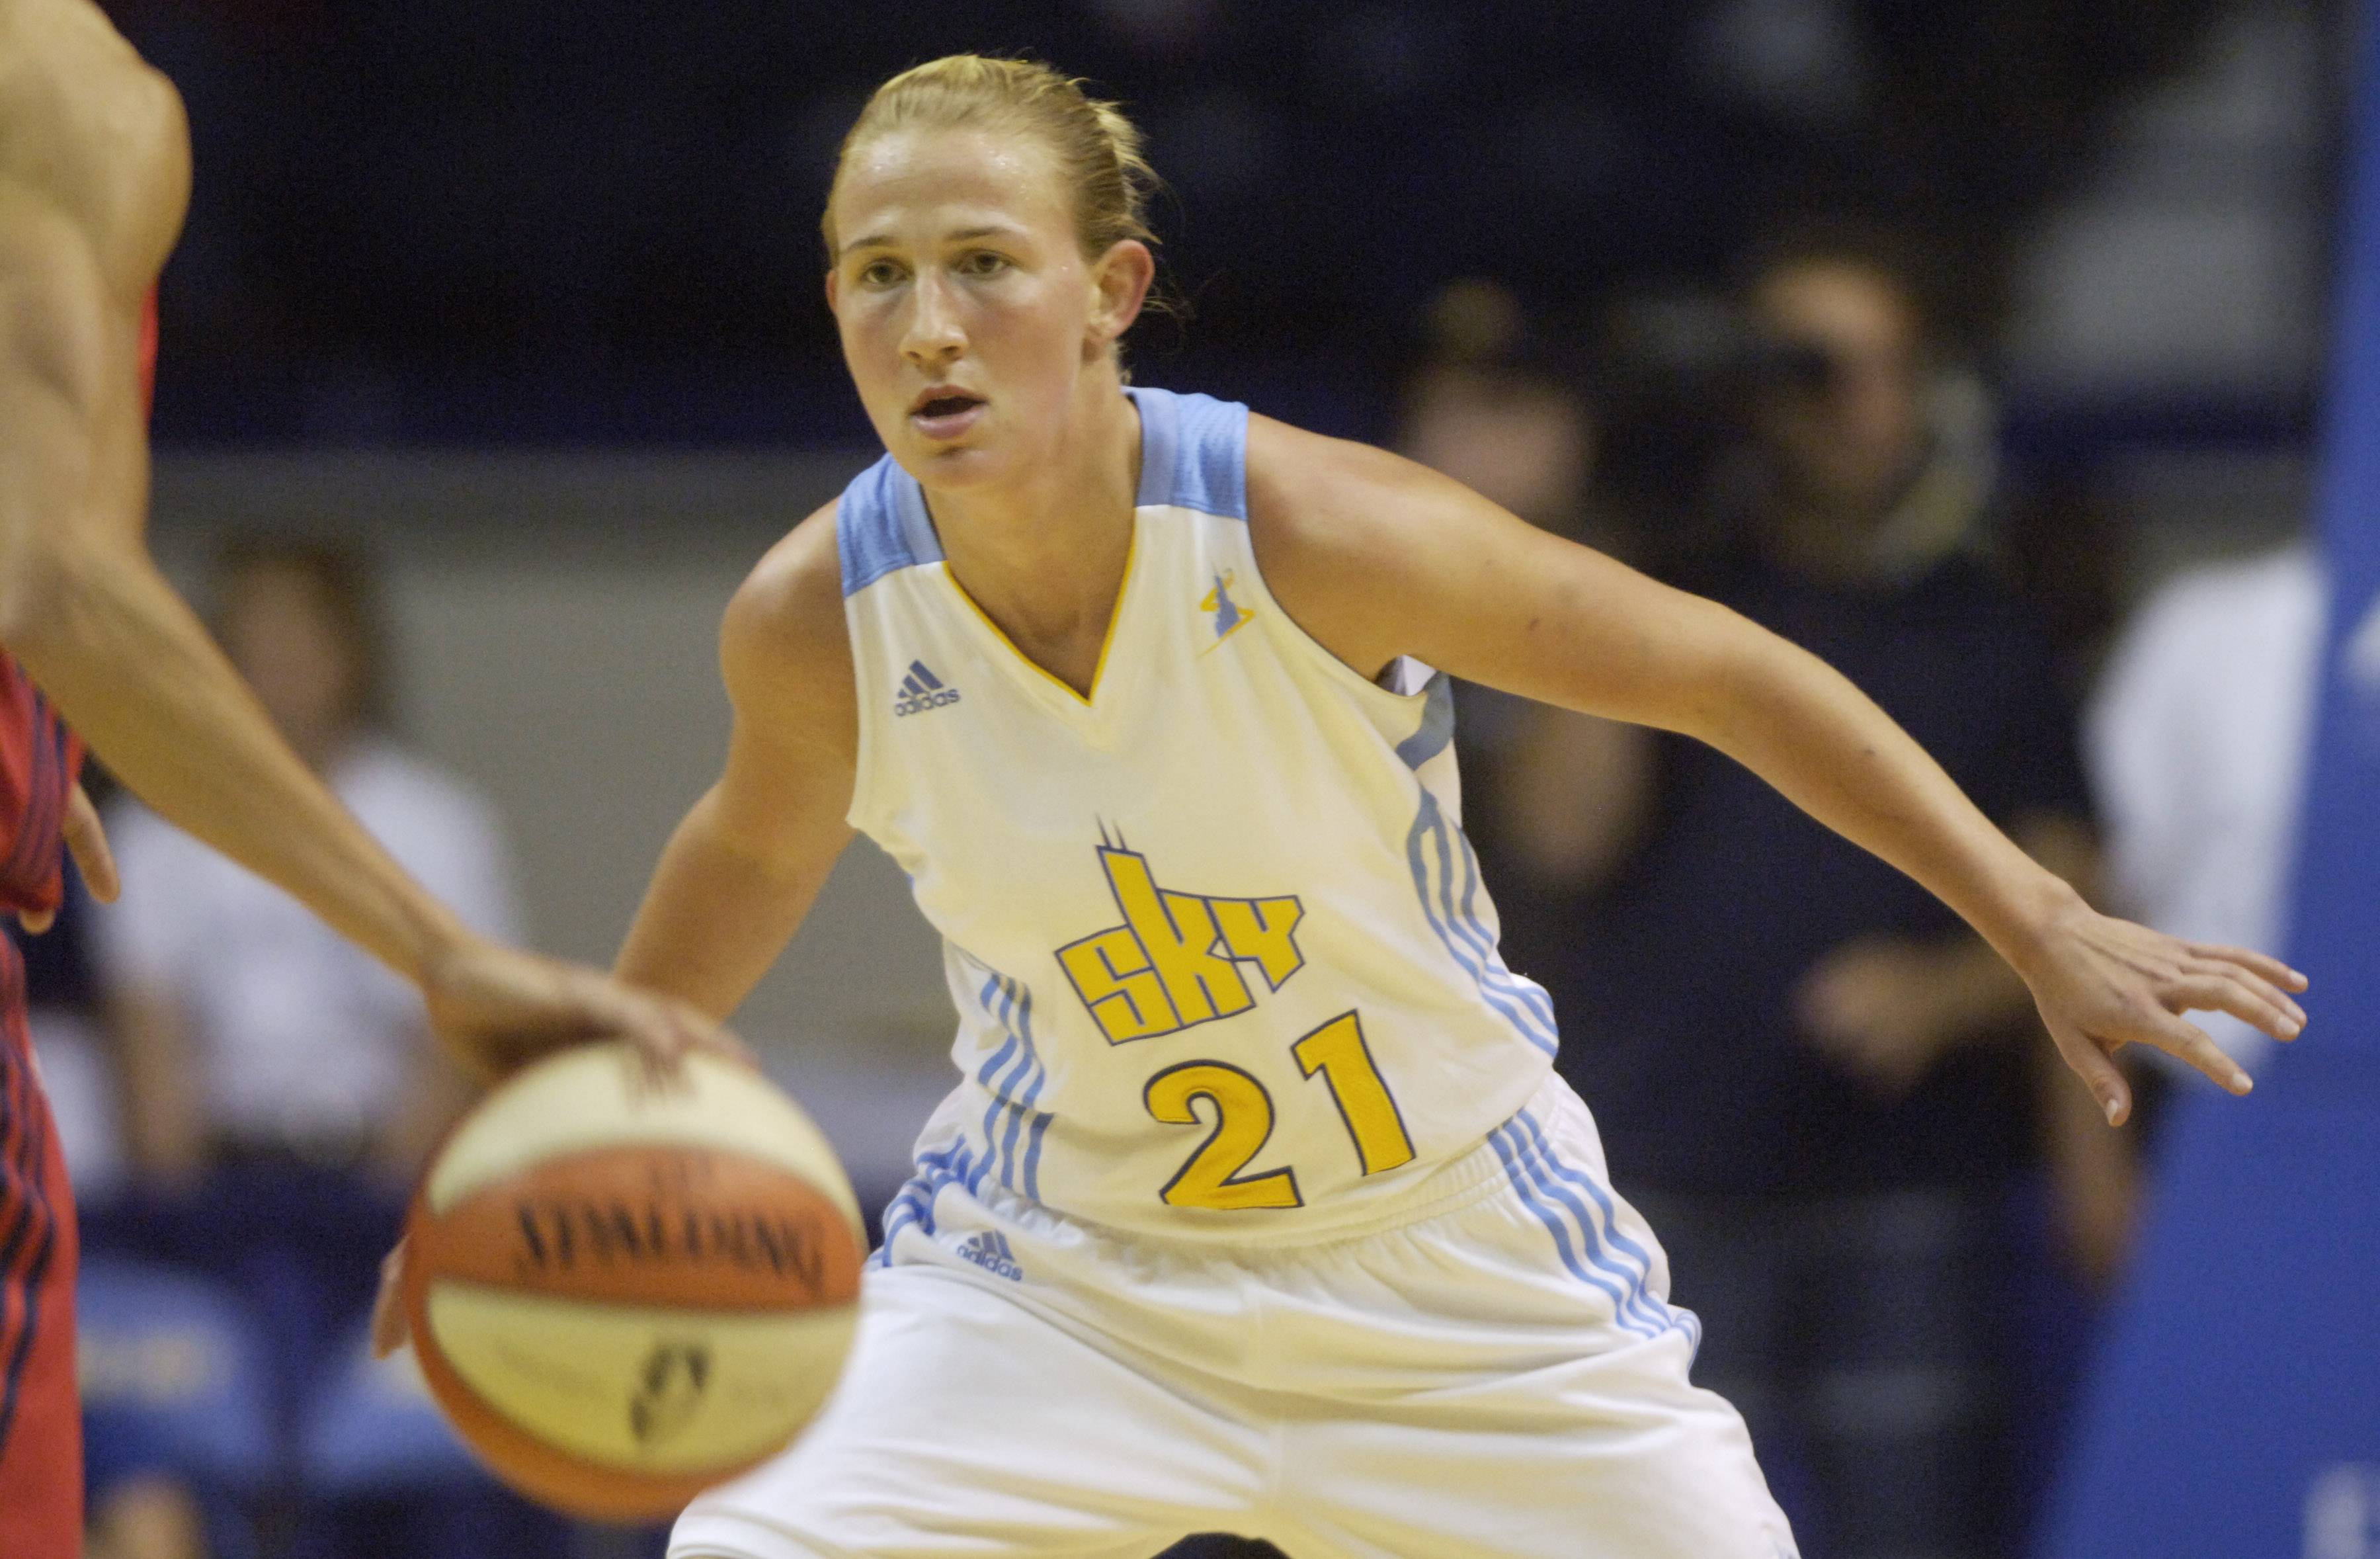 Sky guard Courtney Vandersloot has been cleared to play today against the Washington Mystics.